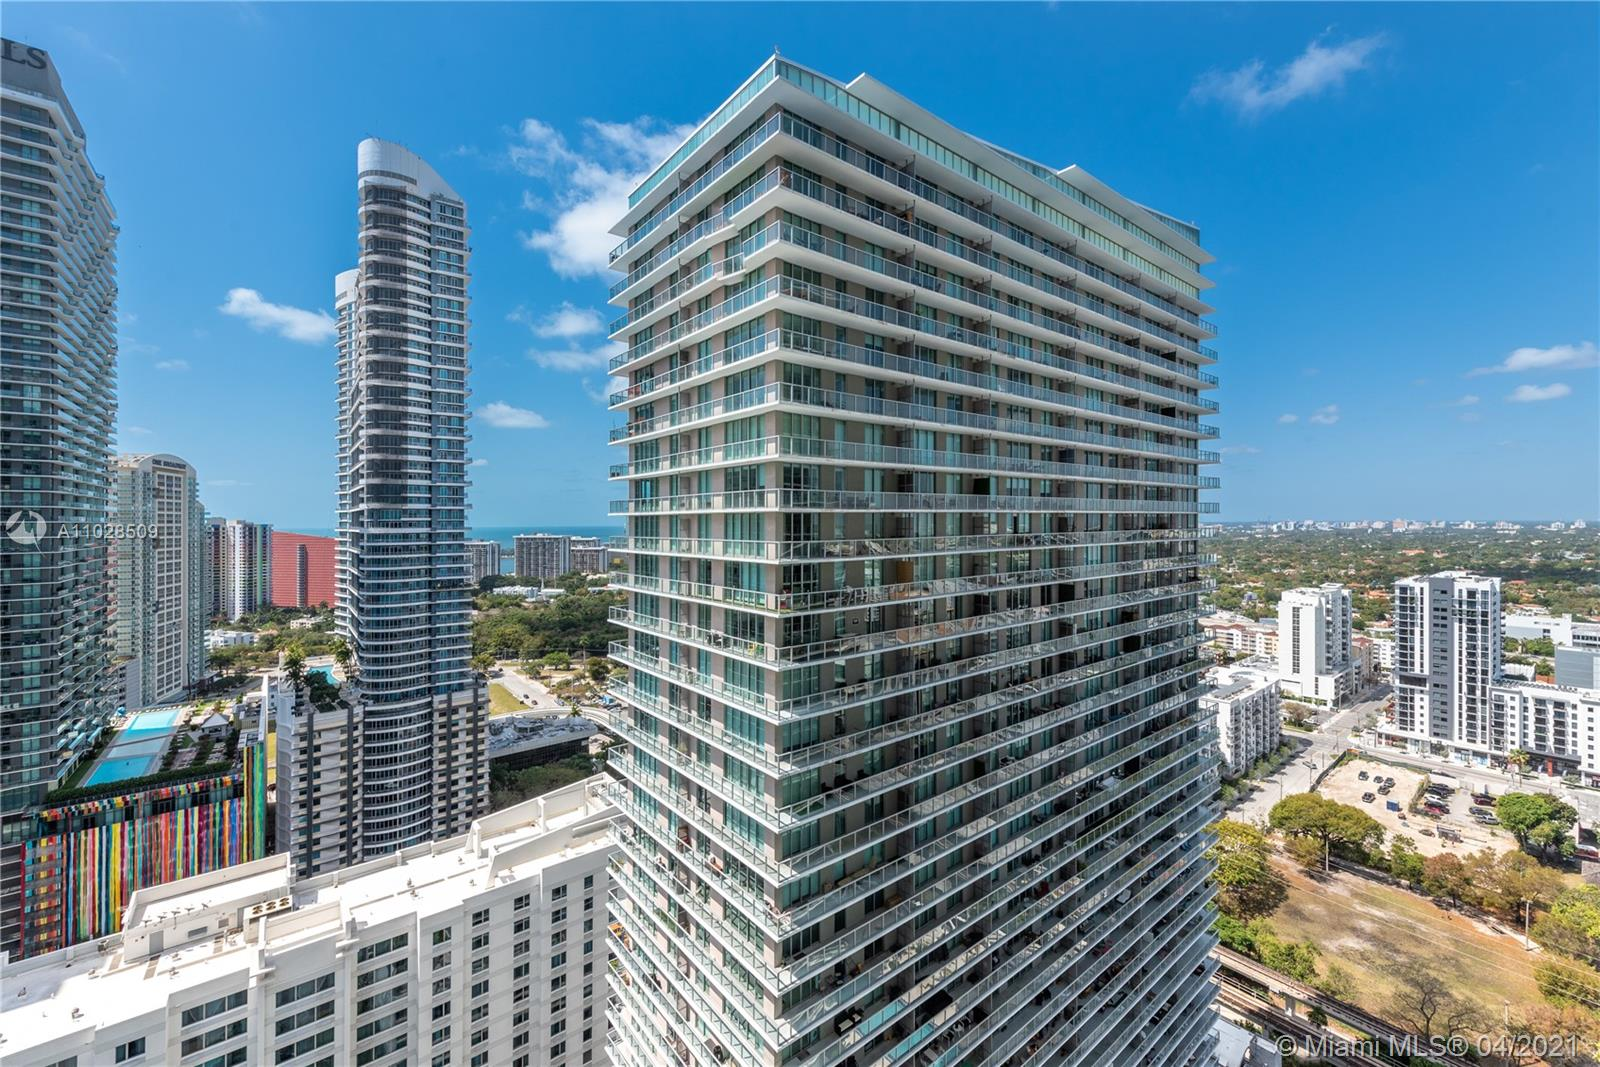 Axis on Brickell North Tower #3218-N - 1111 SW 1st Ave #3218-N, Miami, FL 33130